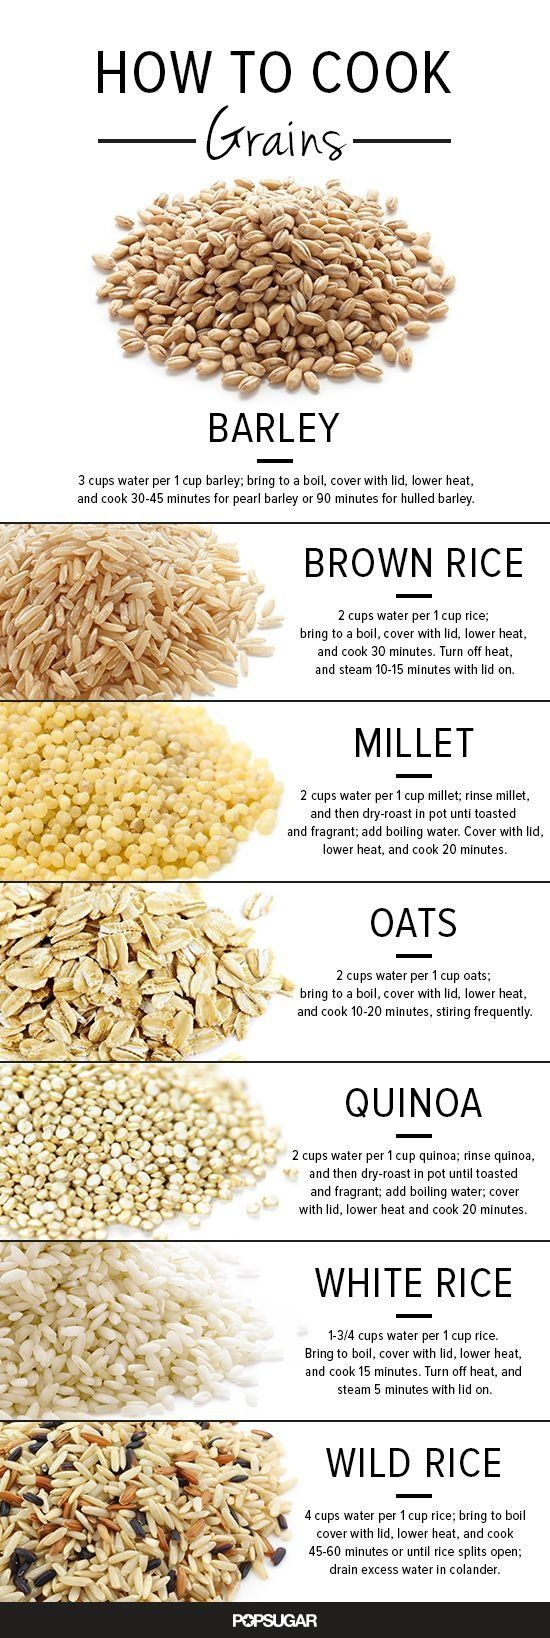 Brown rice provides superior nutrition value over white rice